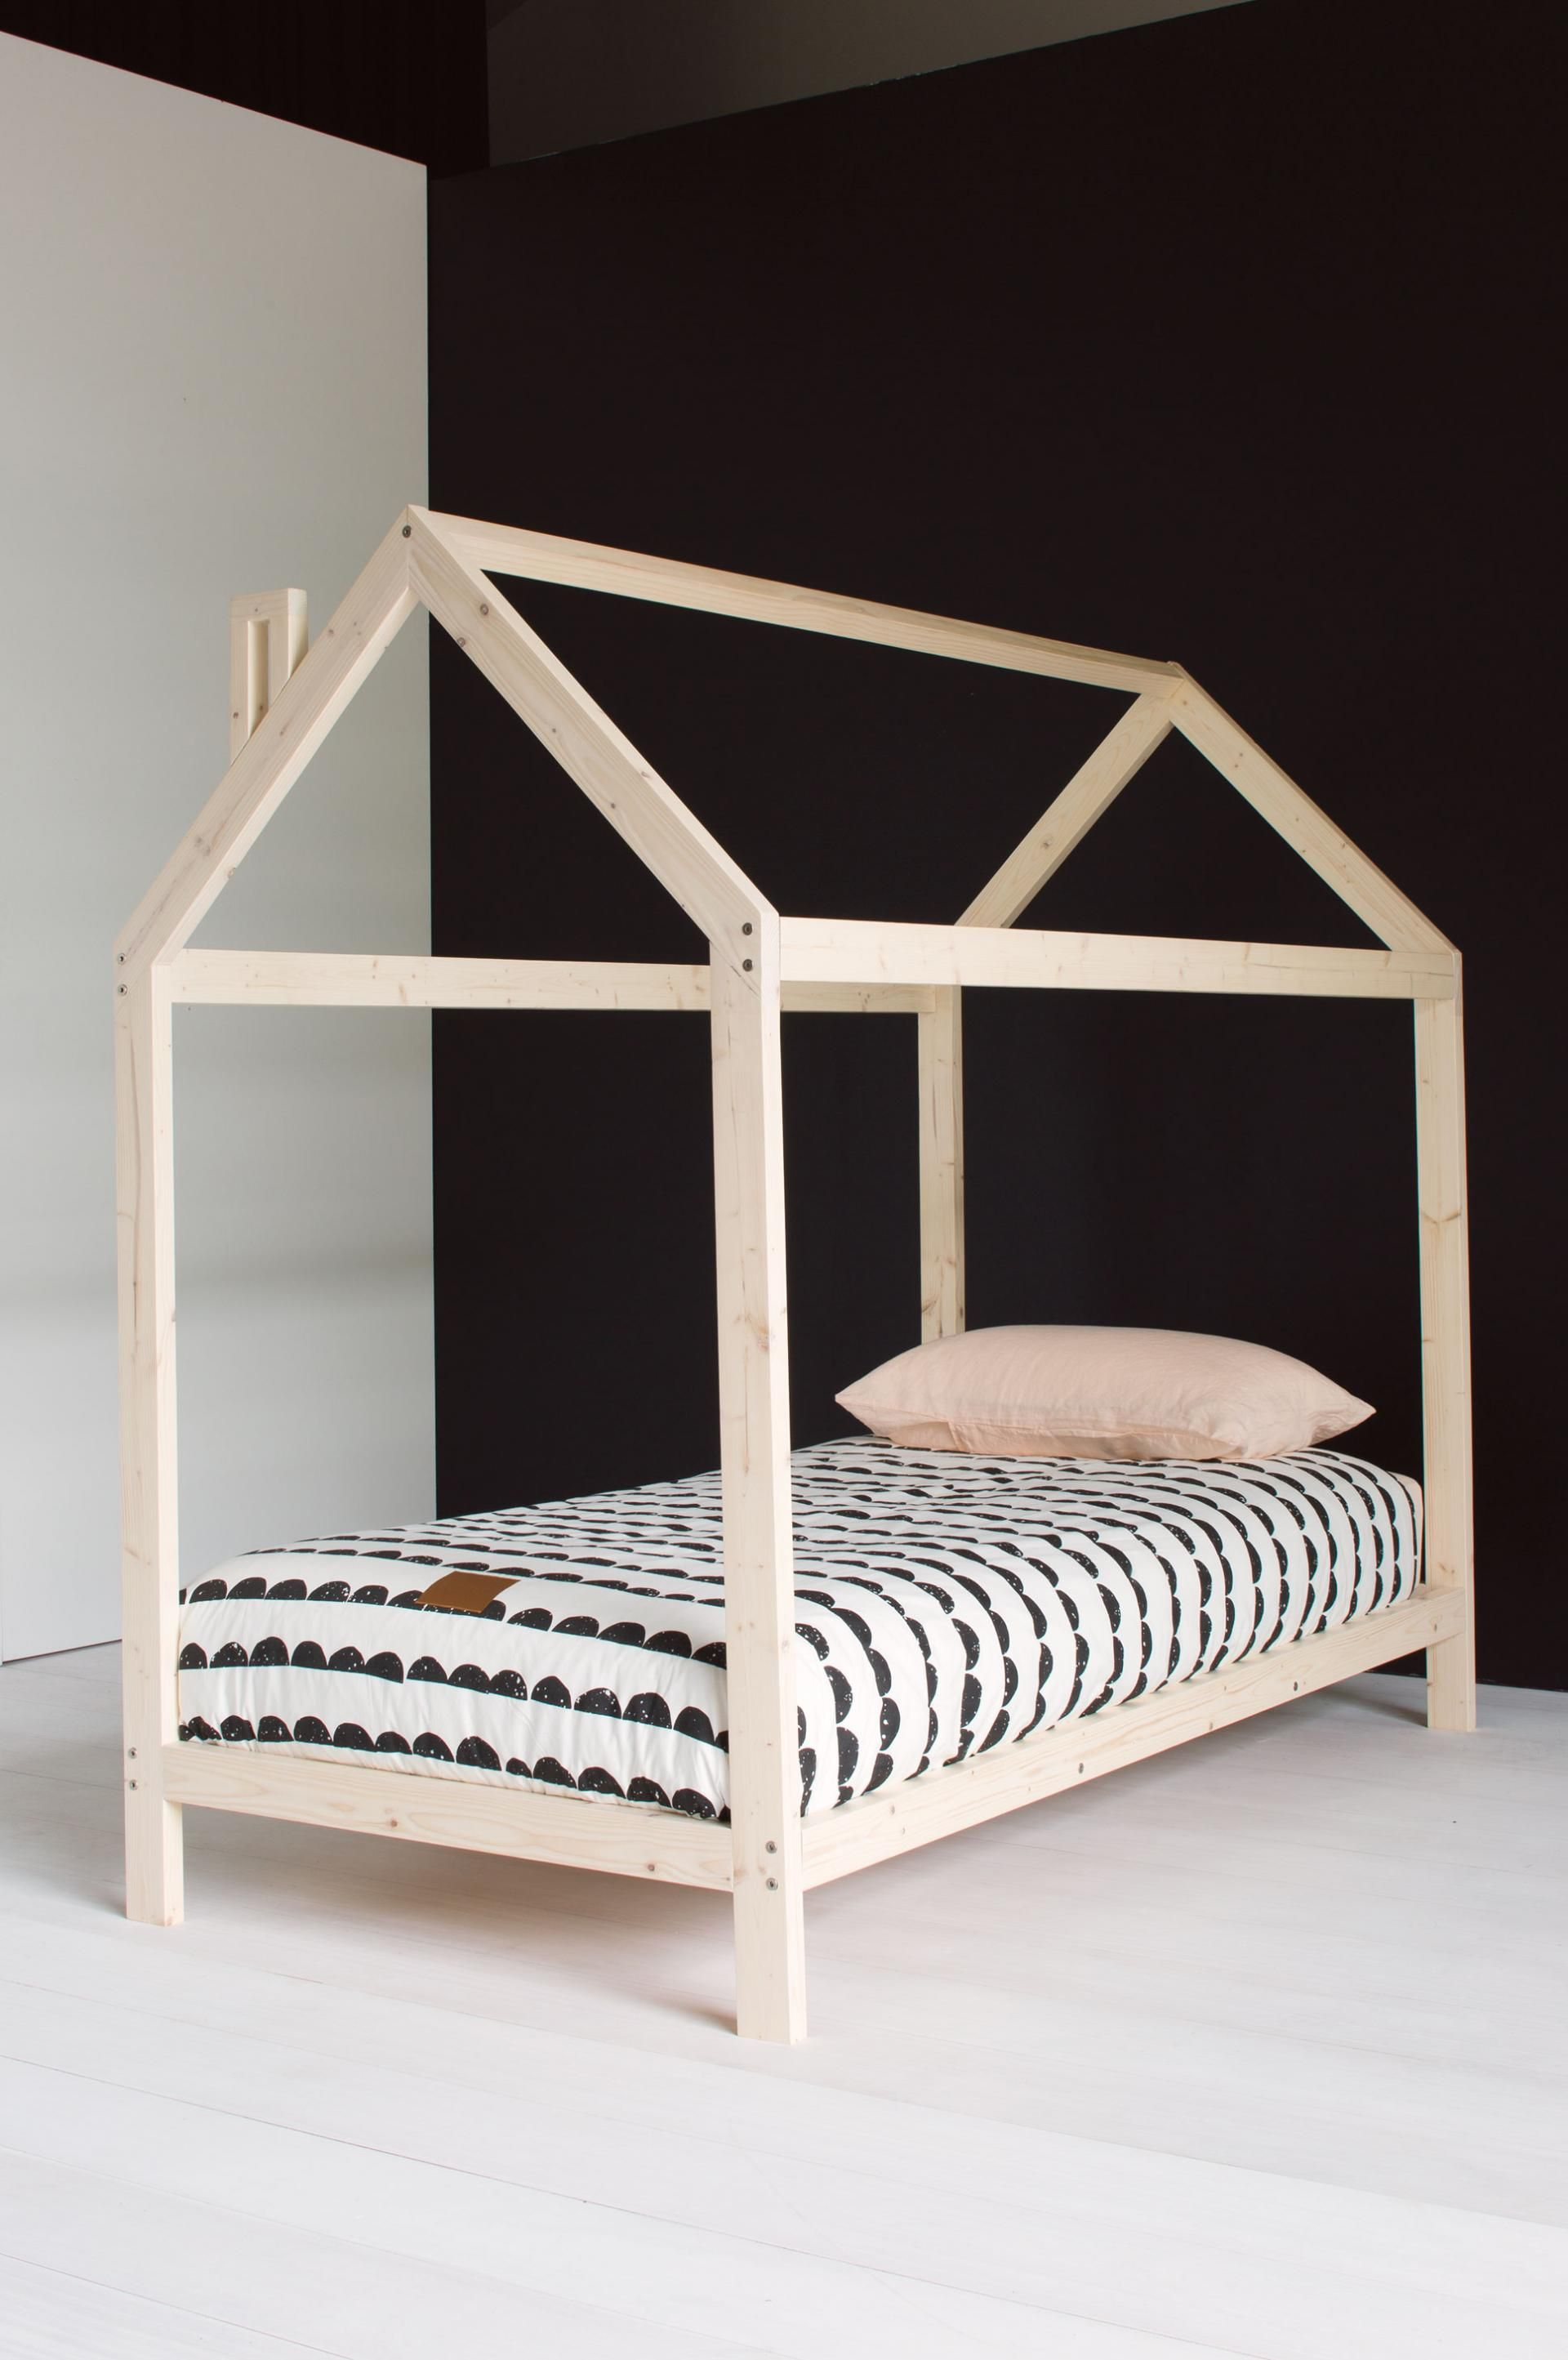 Childs Wooden House Bed Frame House Beds House Frame Bed Girl Room